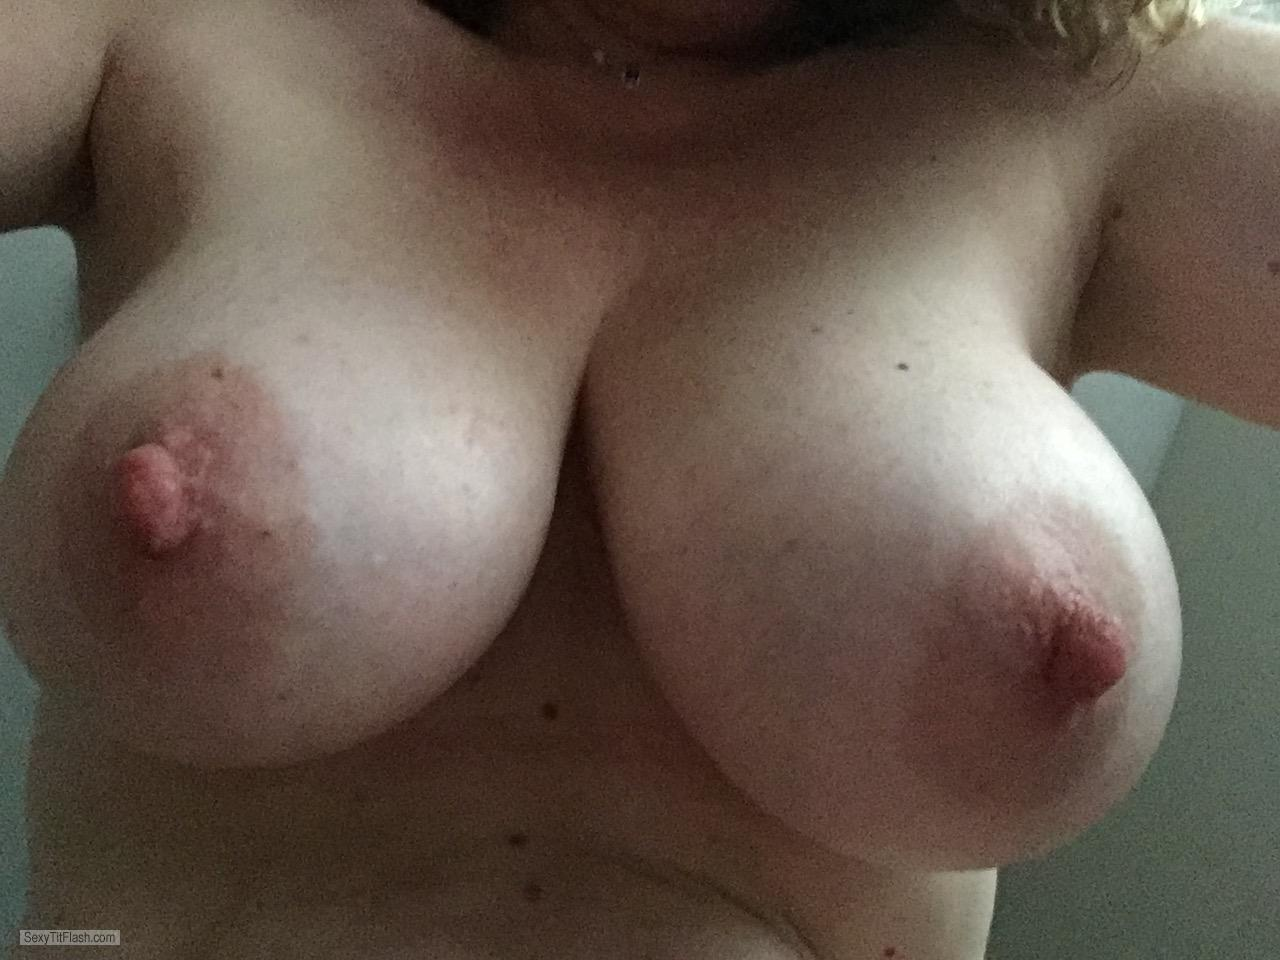 Tit Flash: Wife's Big Tits (Selfie) - Cmp from United Kingdom